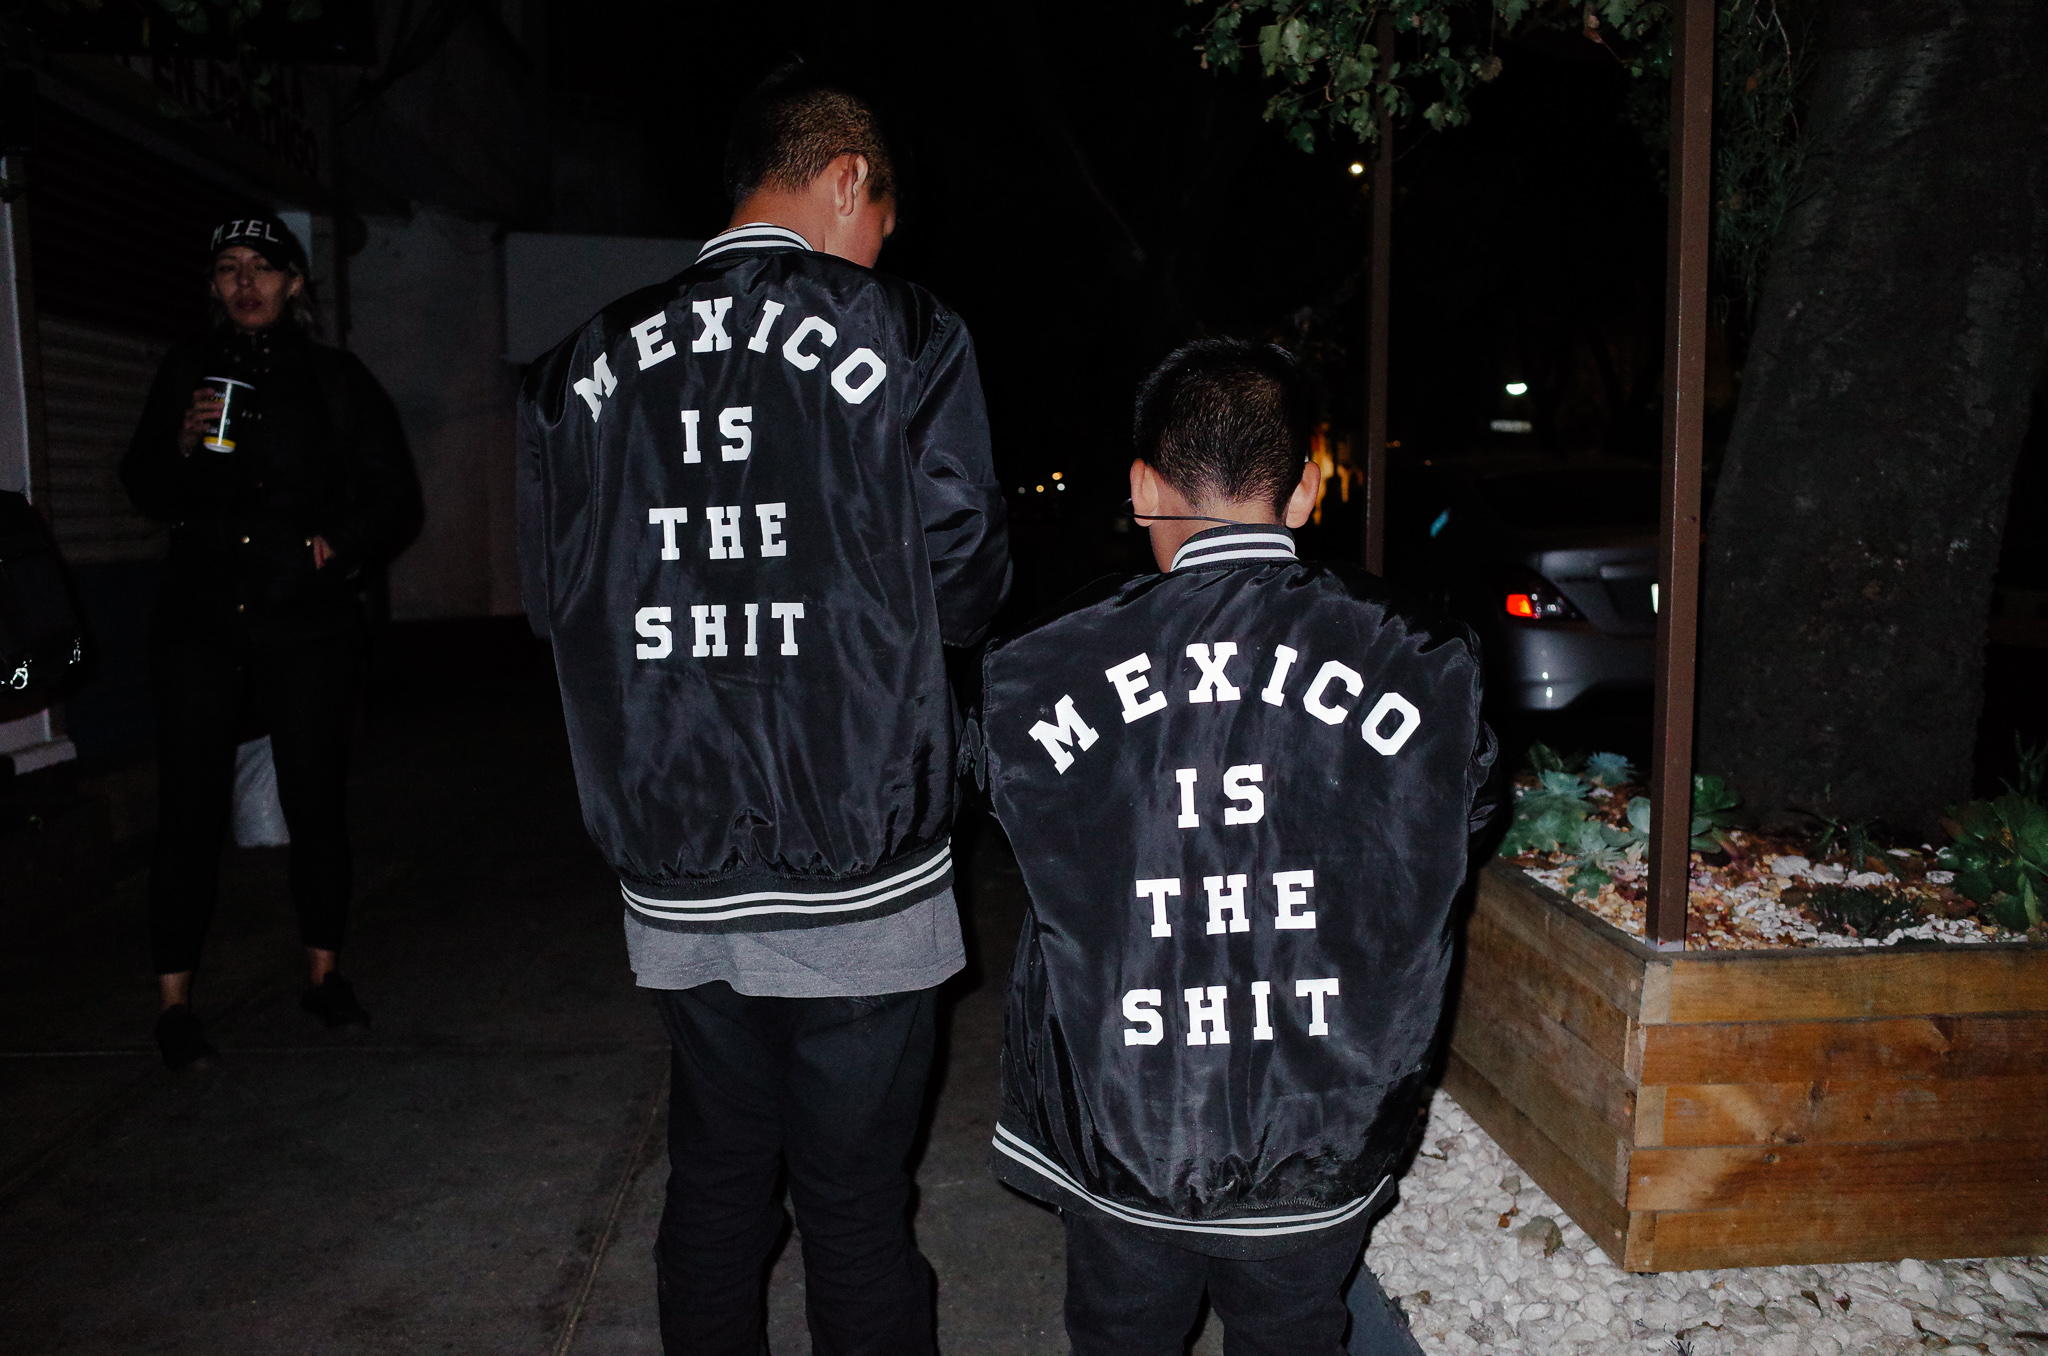 mexico-is-the-shit-2.jpg